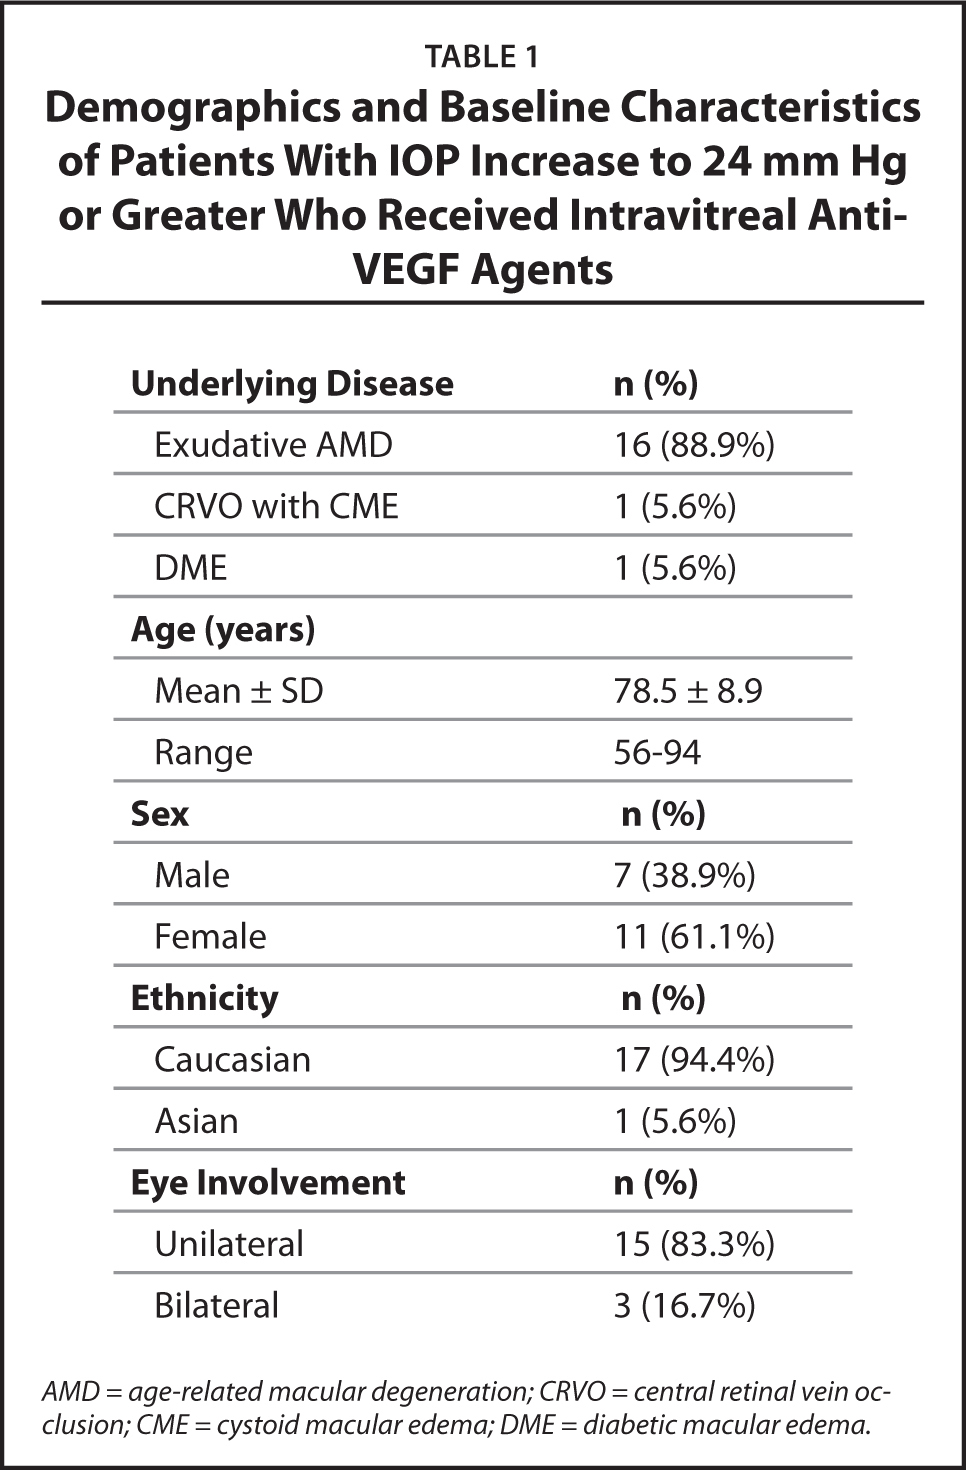 Demographics and Baseline Characteristics of Patients With IOP Increase to 24 mm Hg or Greater Who Received Intravitreal Anti-VEGF Agents